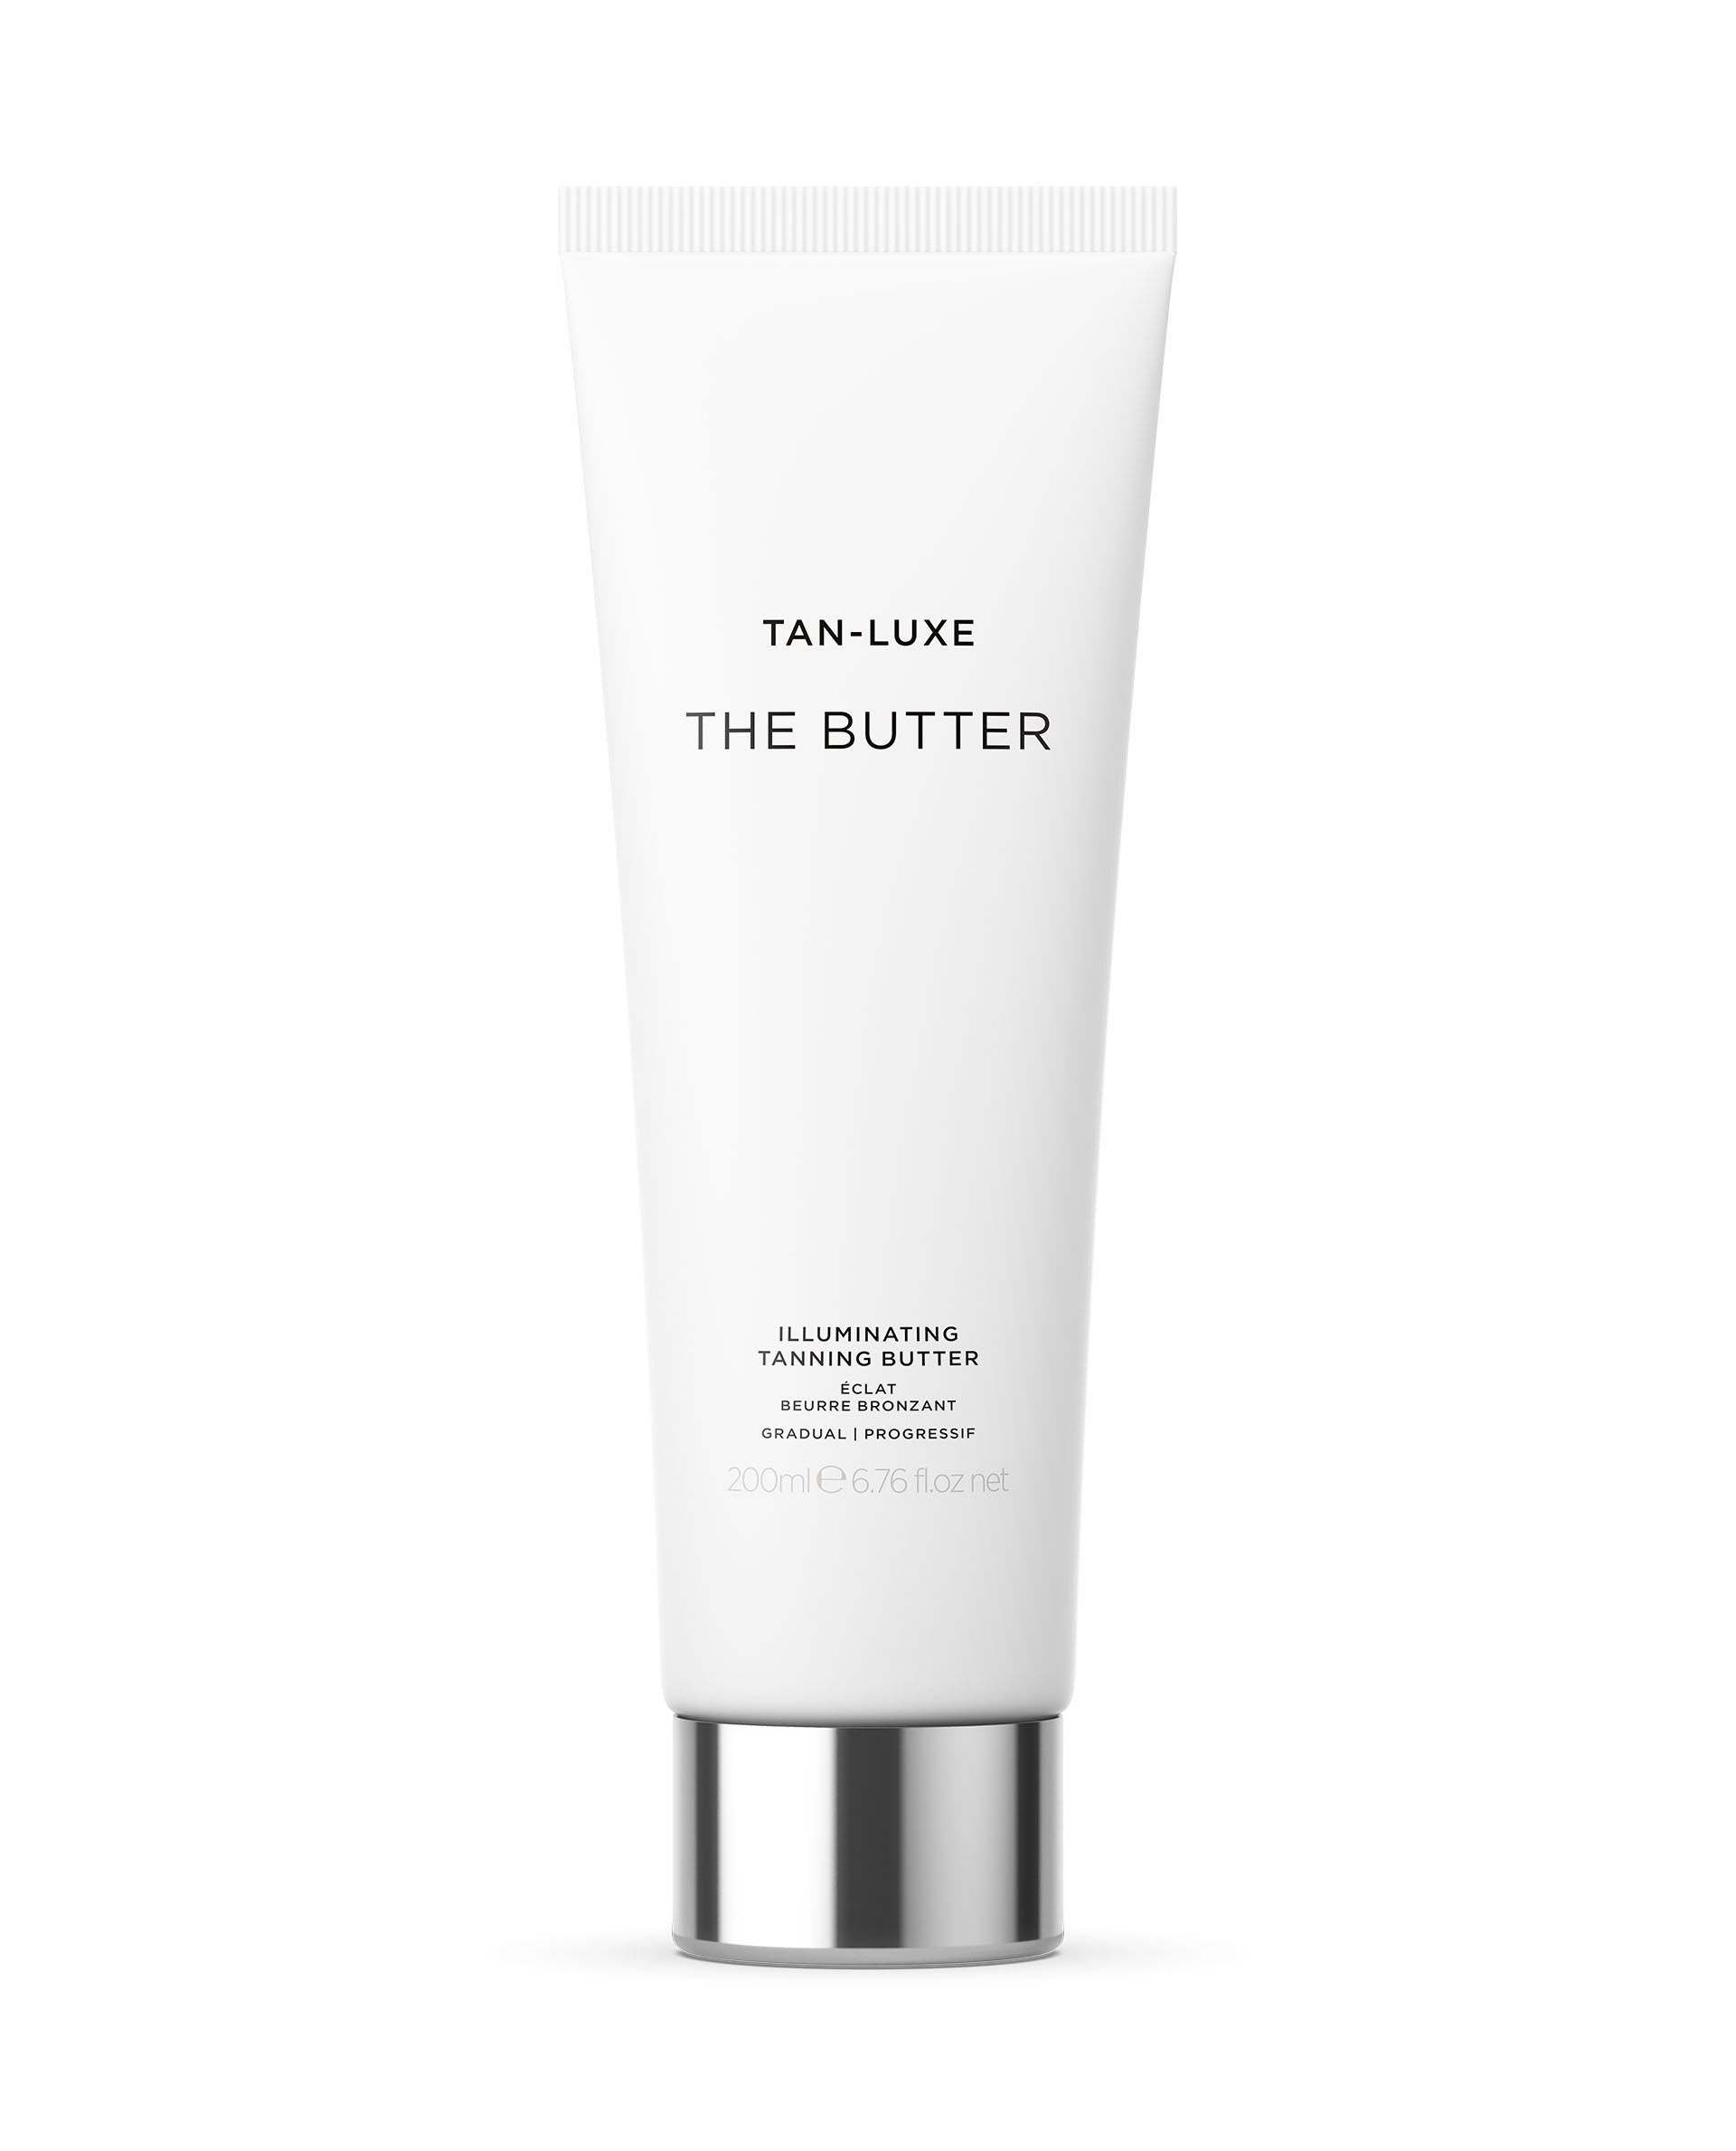 _0000_TanLuxe The Butter 200ml Render 2